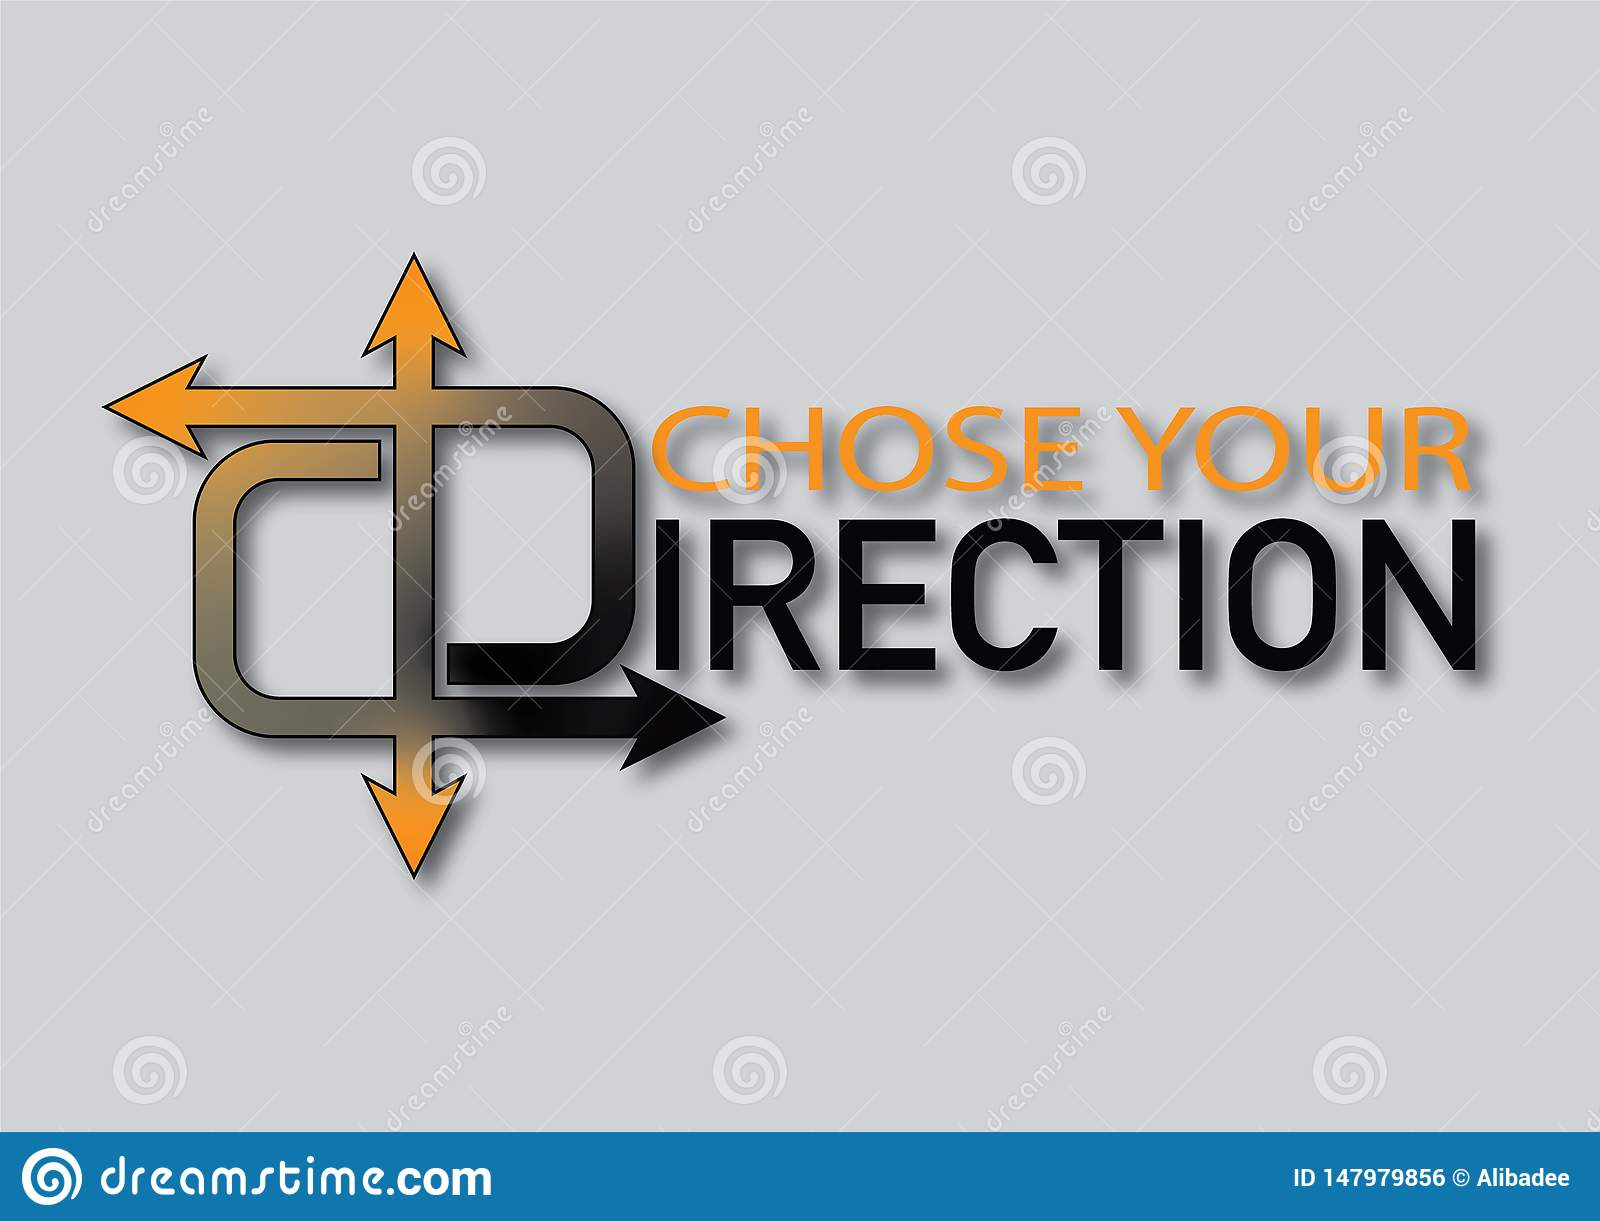 Chose your direction